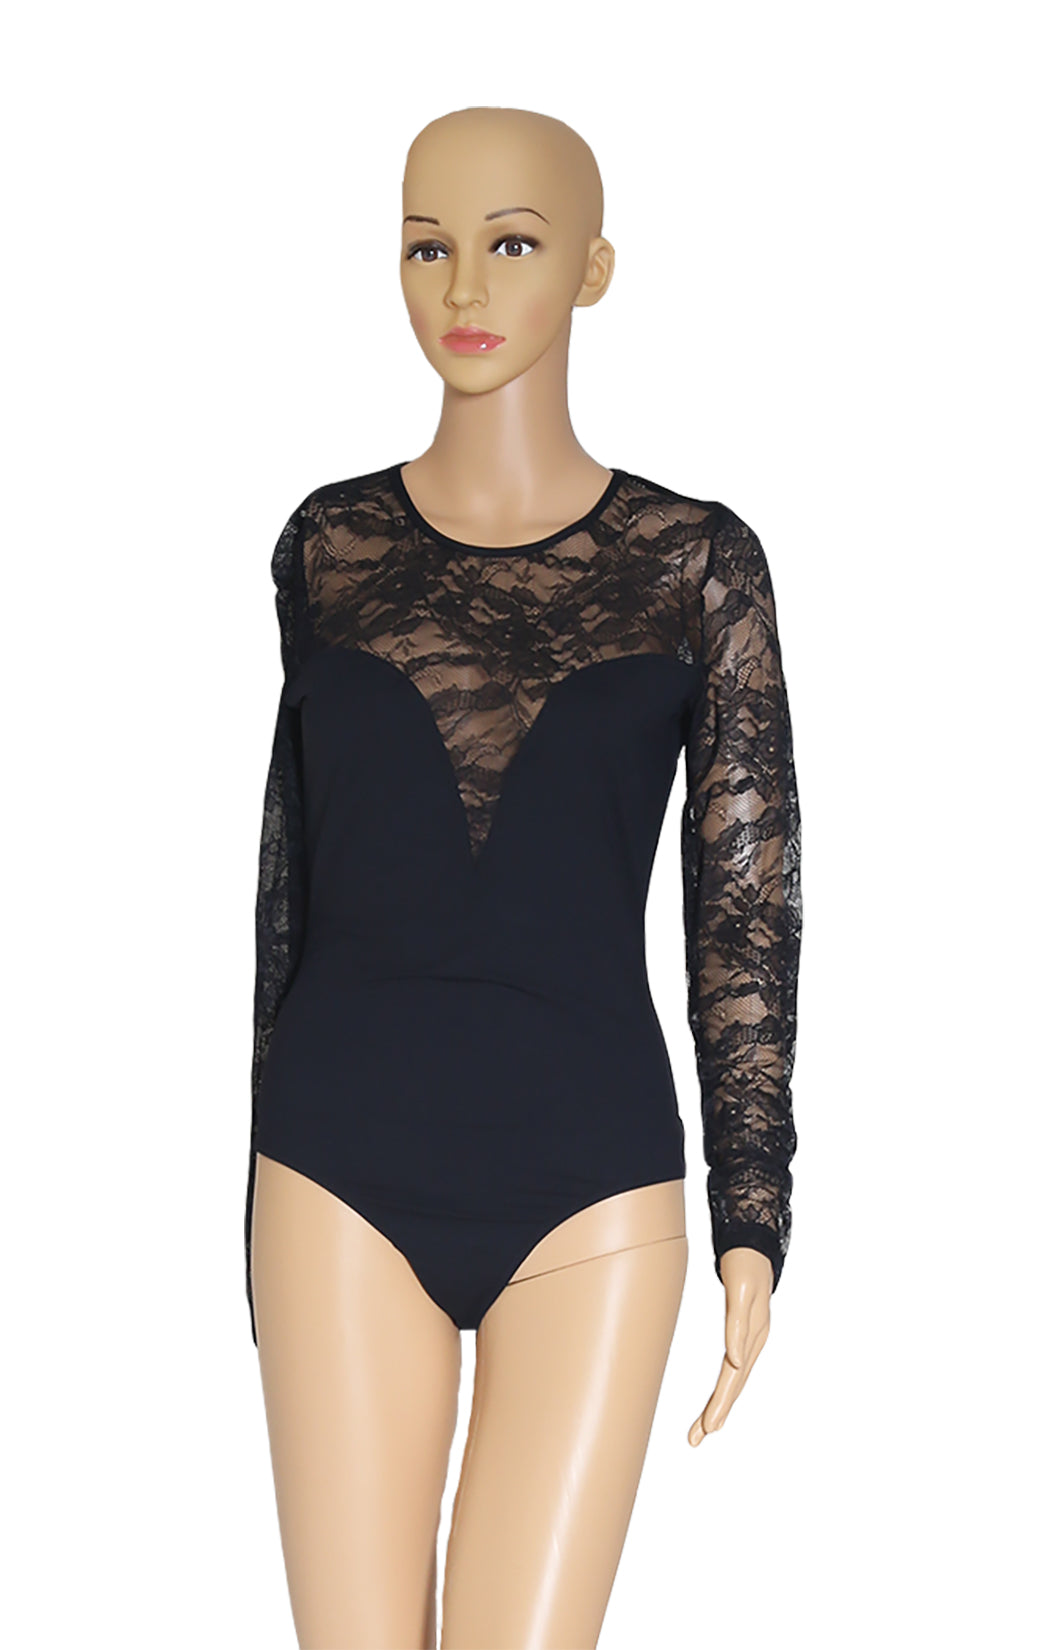 Closeup view of ANTI-FLIRT  Bodysuit  Size: 3 (comparable to US 10)